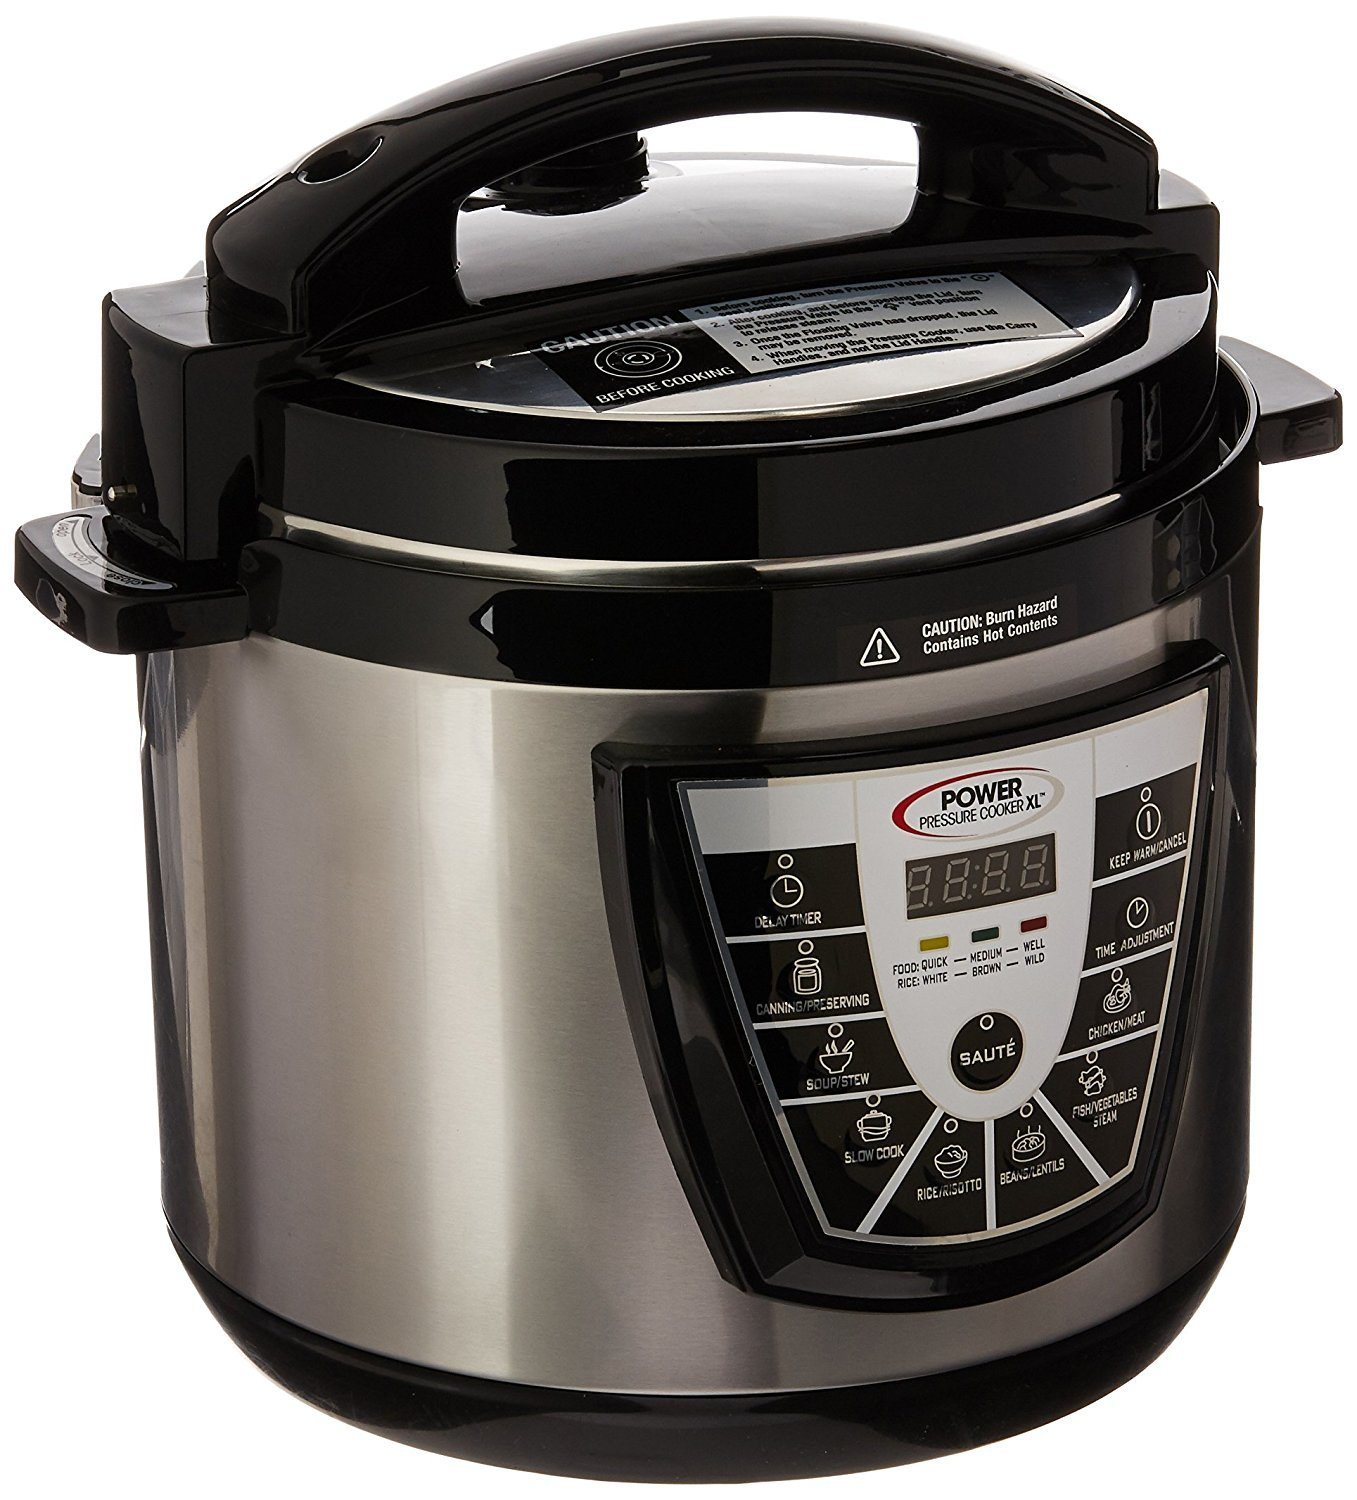 power pressure cooker xl 6 quart